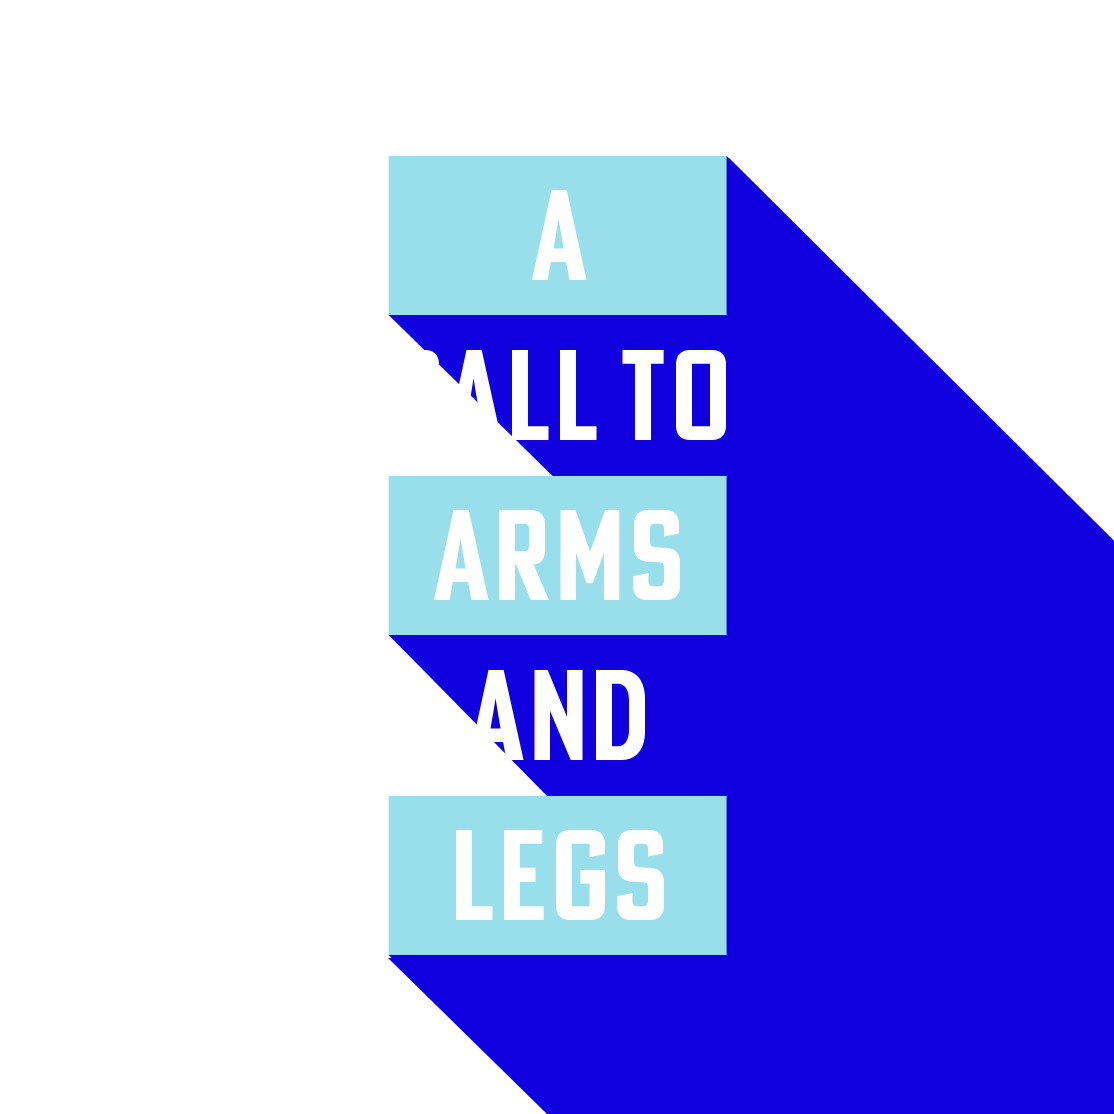 a call to arms and legs image